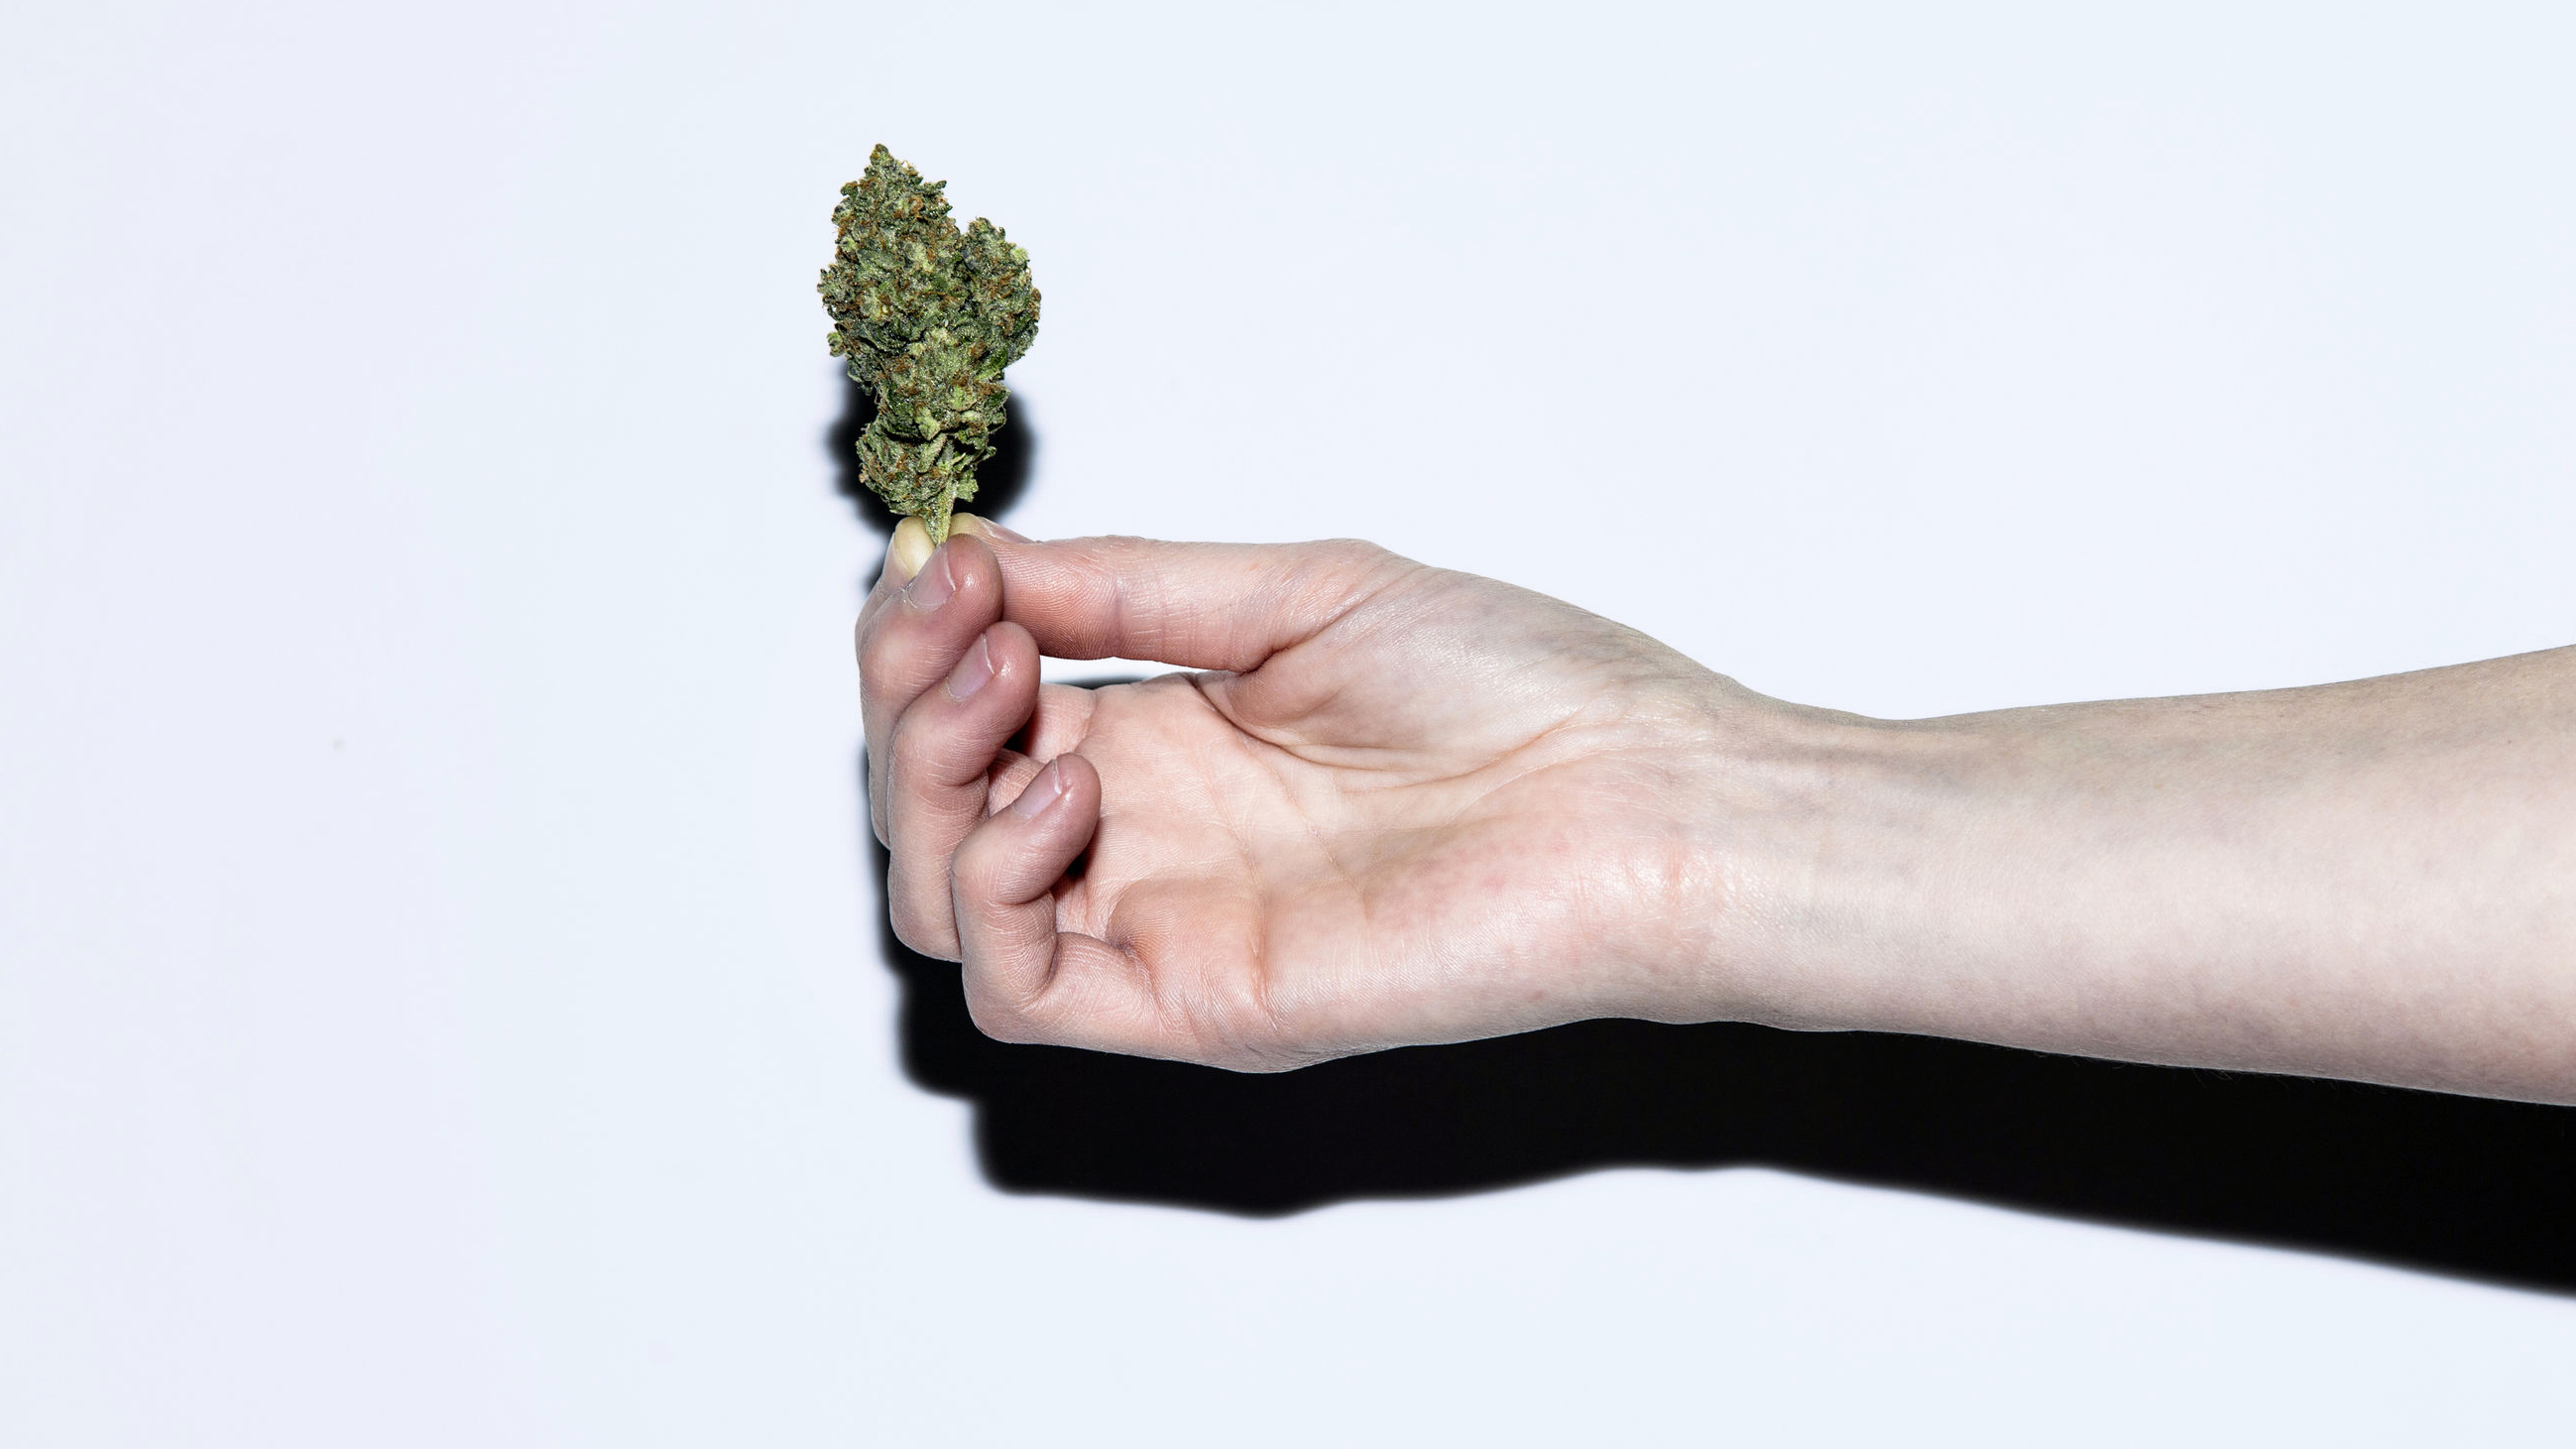 Woman's hand holding a bud of Cannabis.